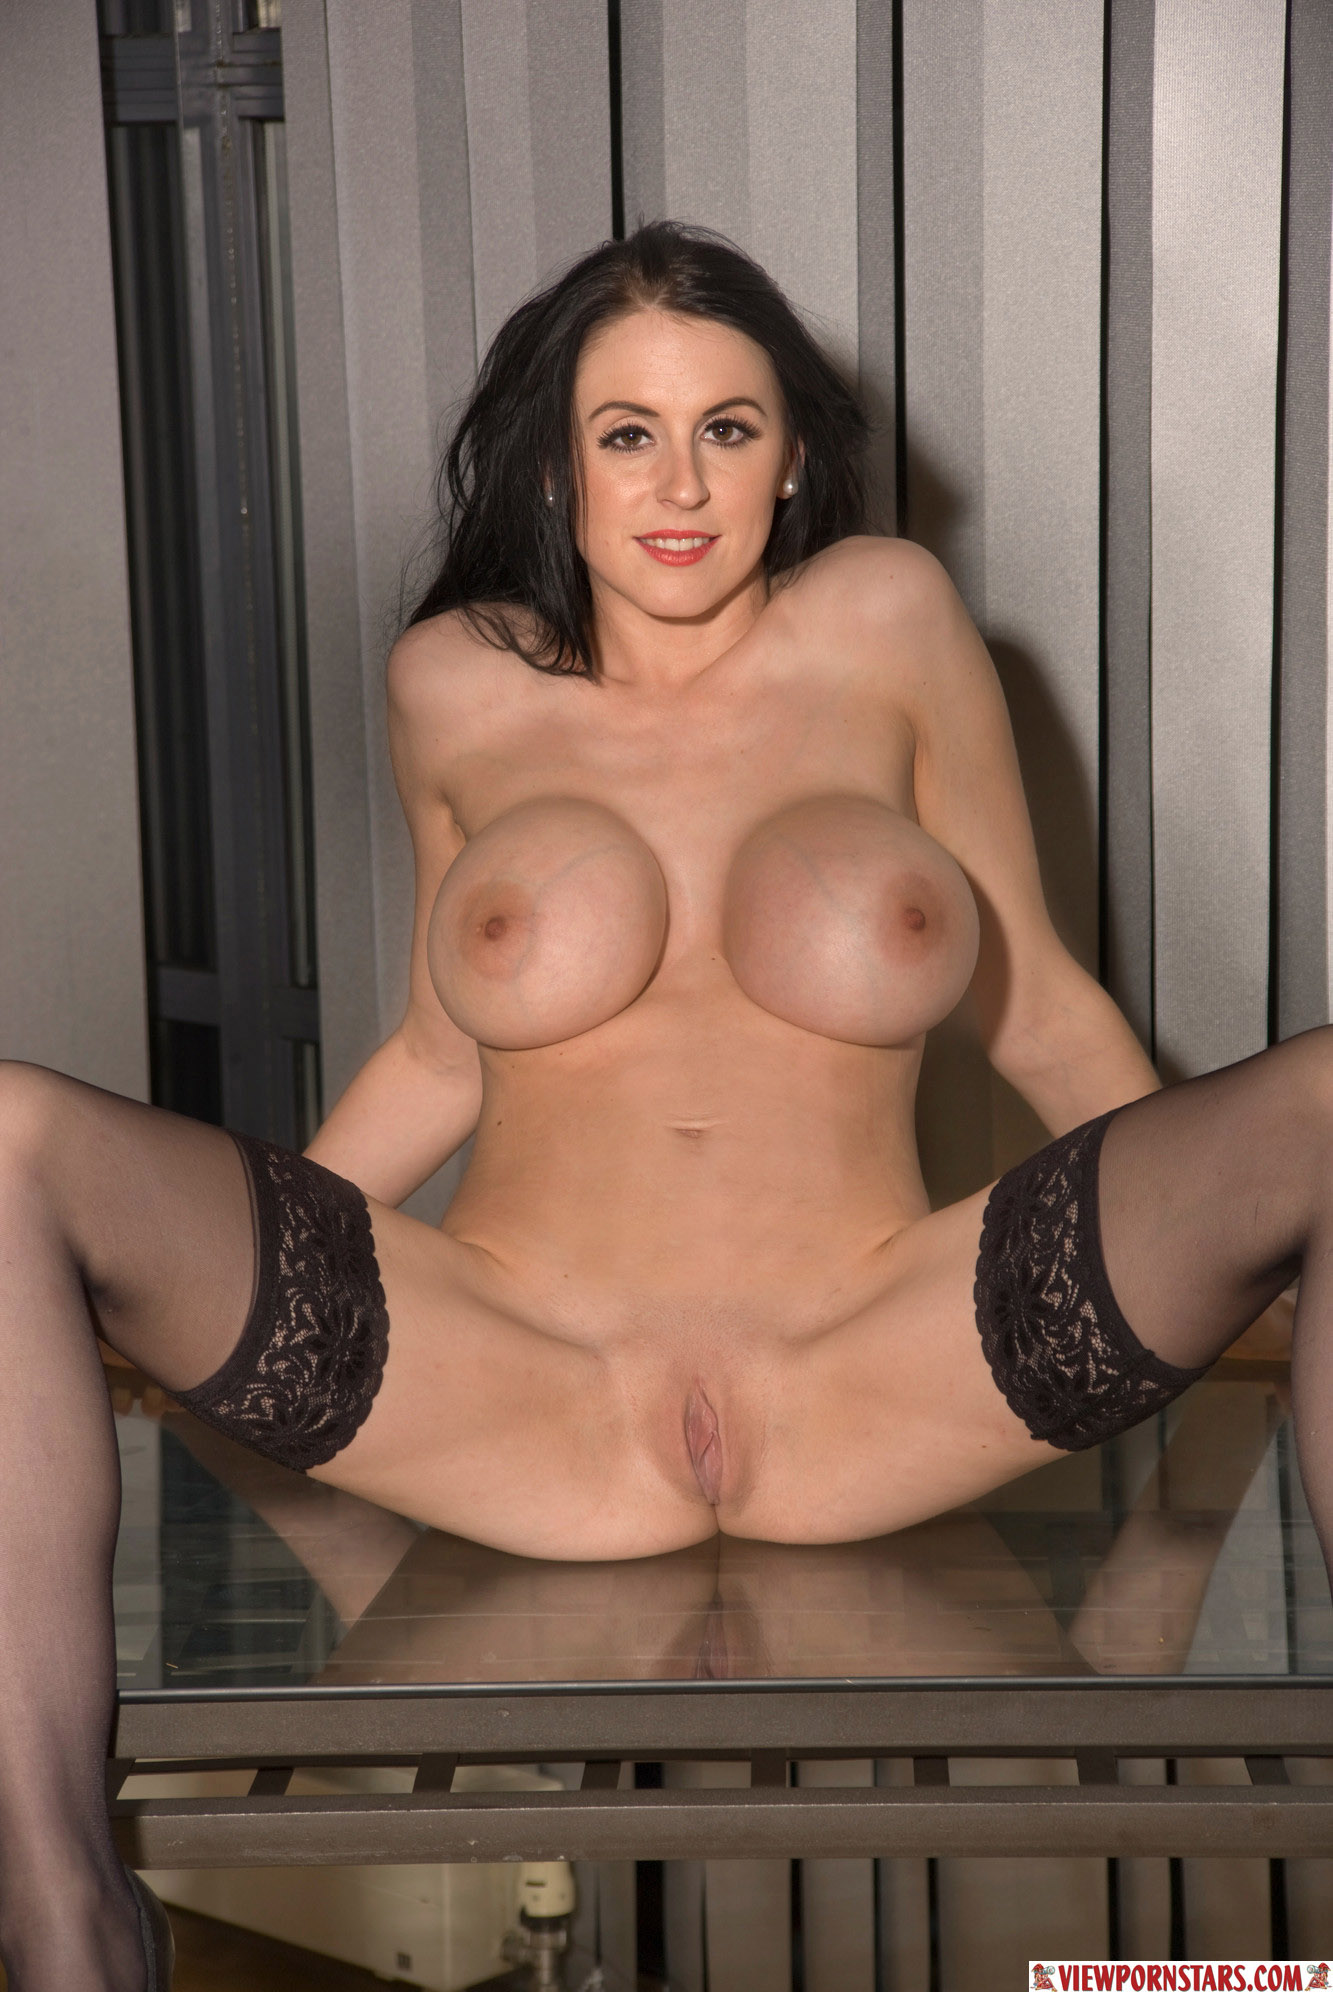 big black tits brunettes pictures viewpornstars